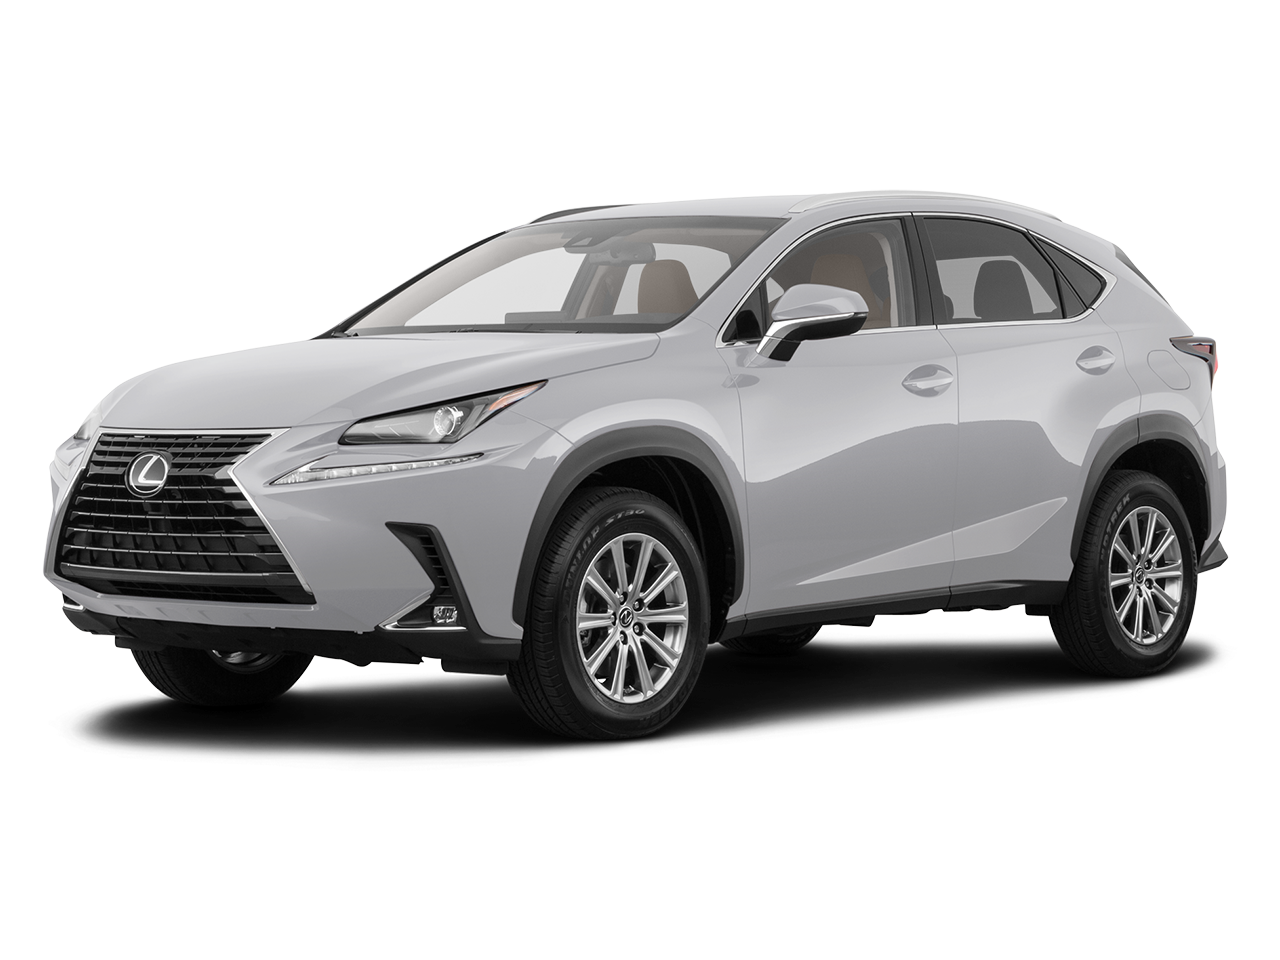 Research The 2018 Lexus NX AWD